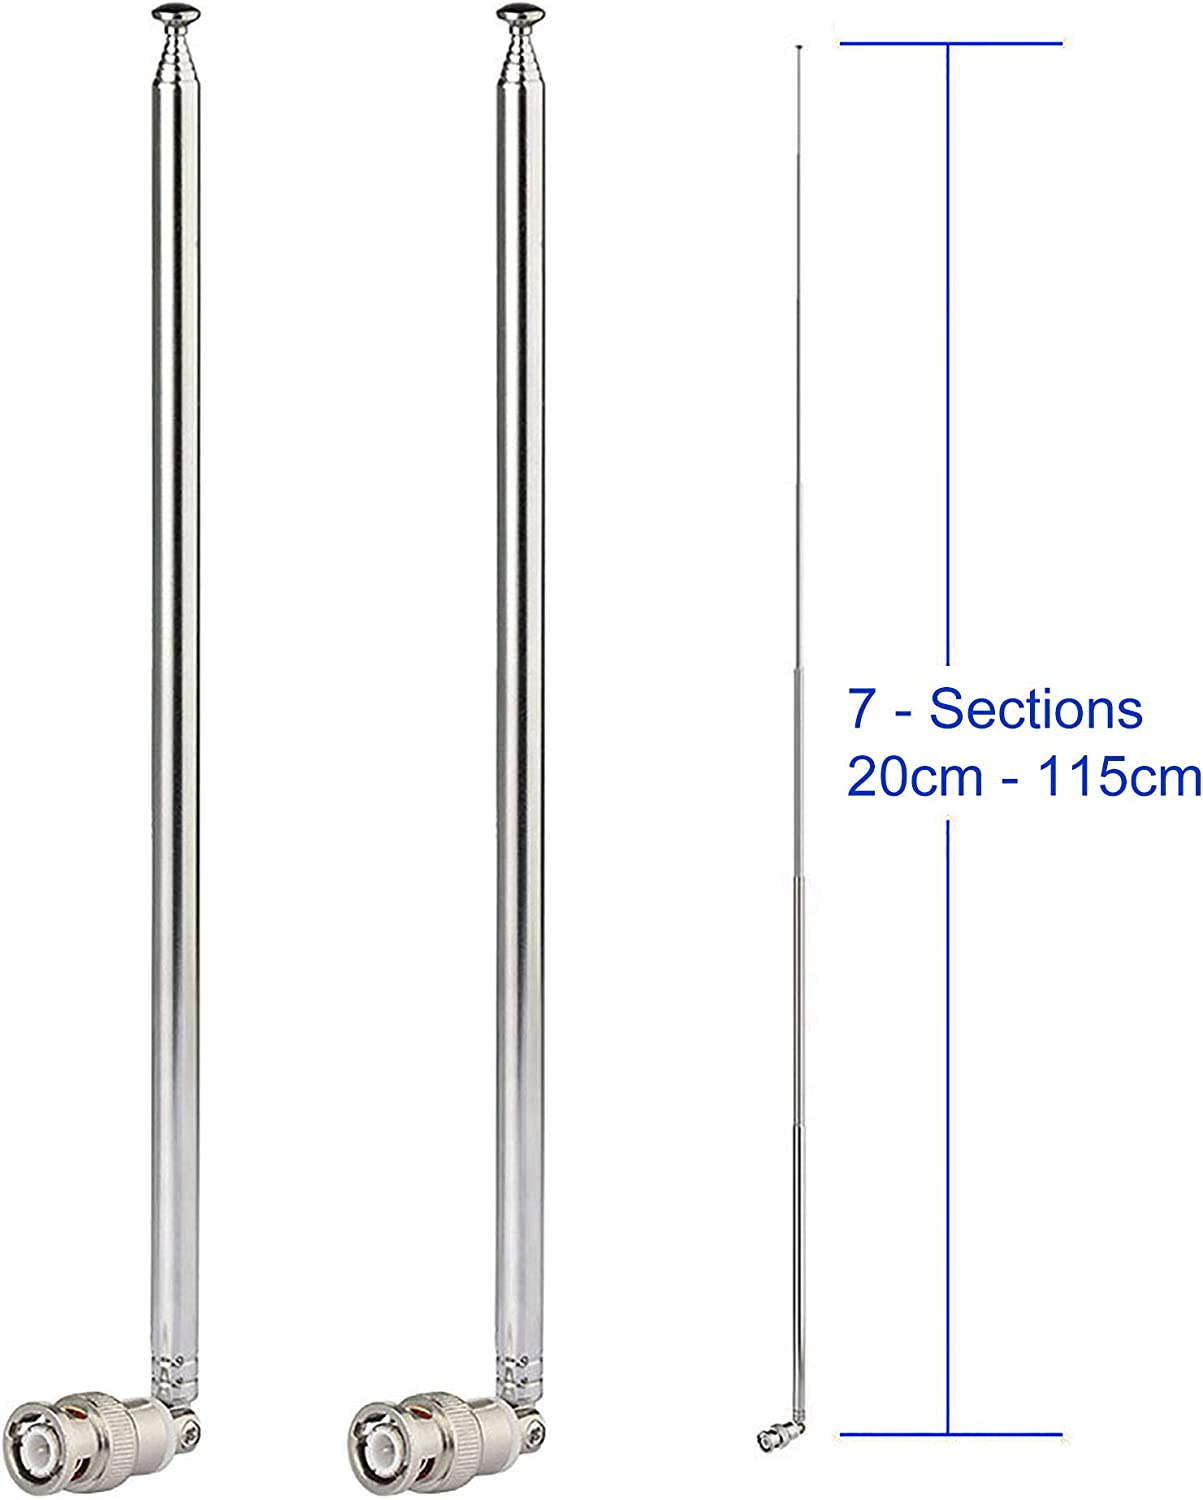 Bingfu HF VHF UHF 7-Sections 115cm Telescopic BNC Male Antenna 2-Pack for Ham Radio Amateur Radio Mobile Radio Transceiver Two Way Radio Police Scanner Wireless Microphone Receiver Frequency Counter